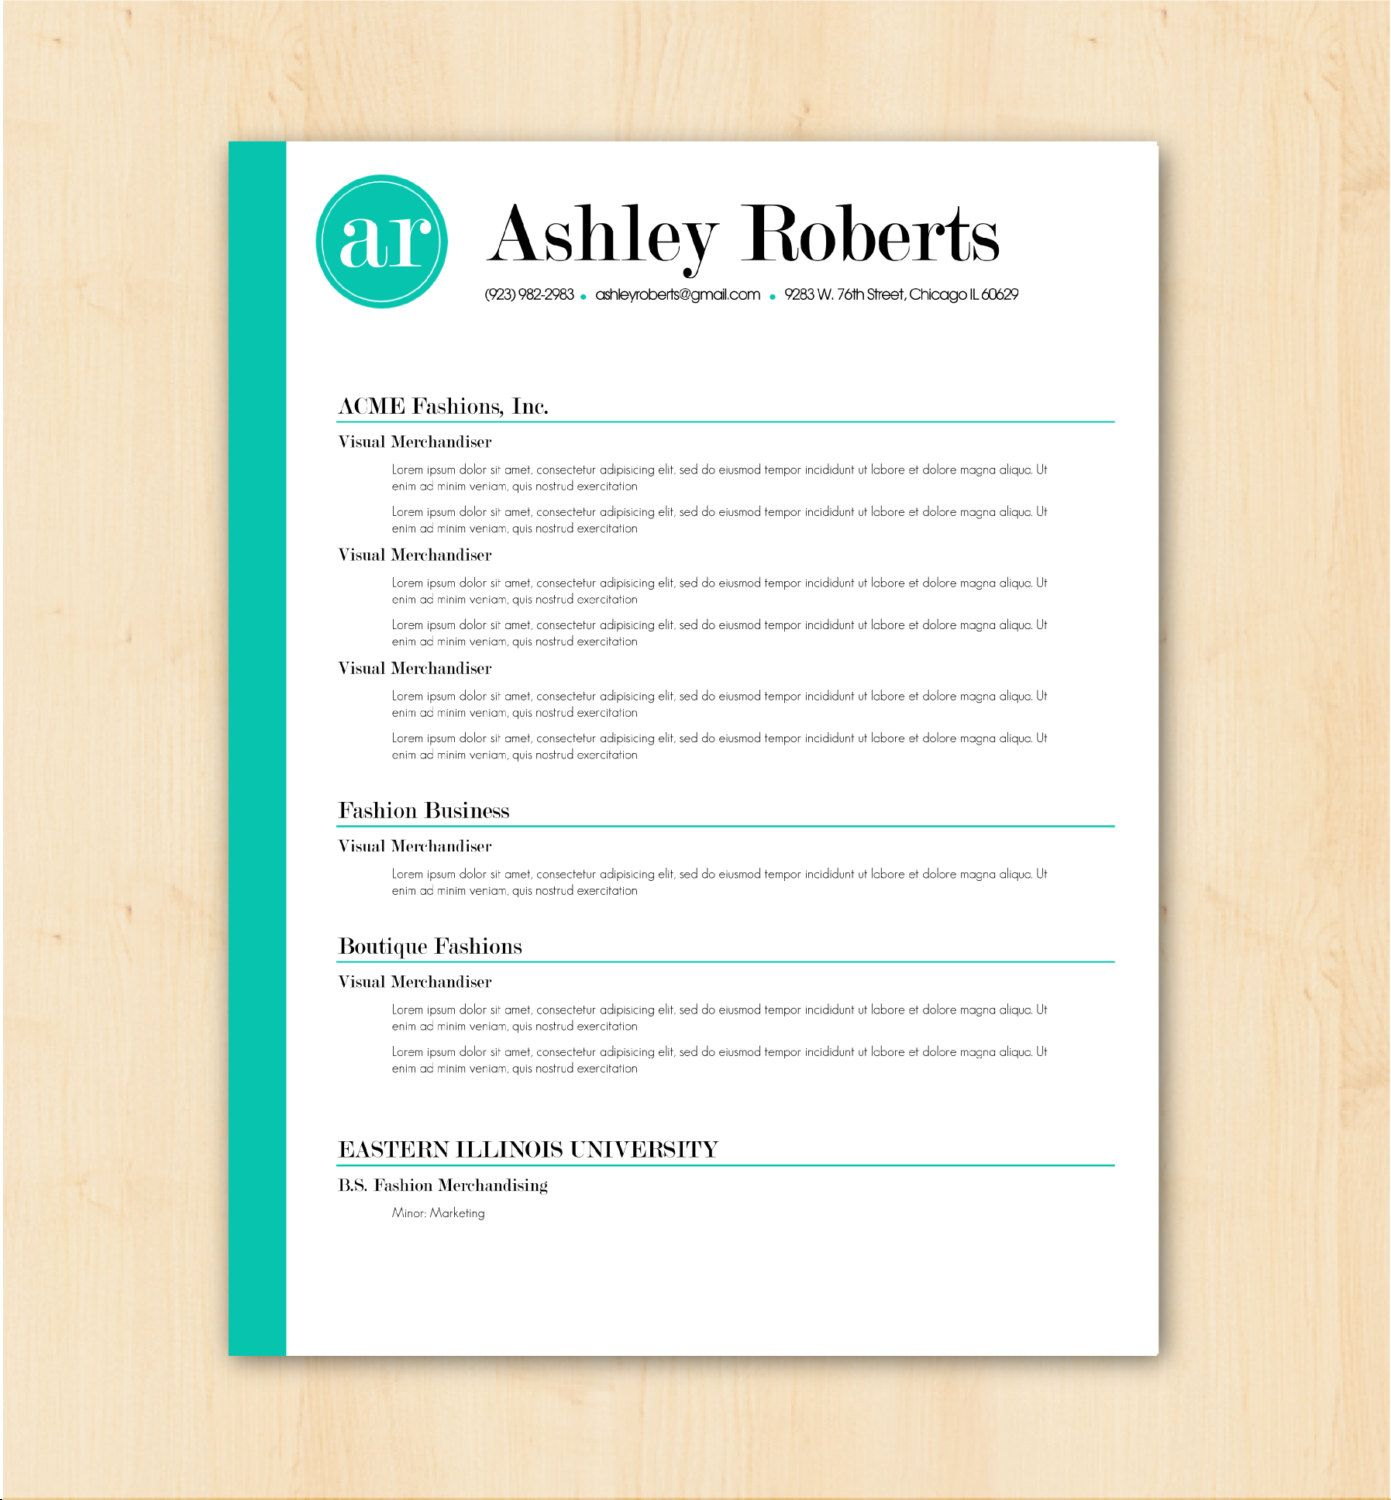 Resume Format Design Looking For A Professional Resume Template The Ashley